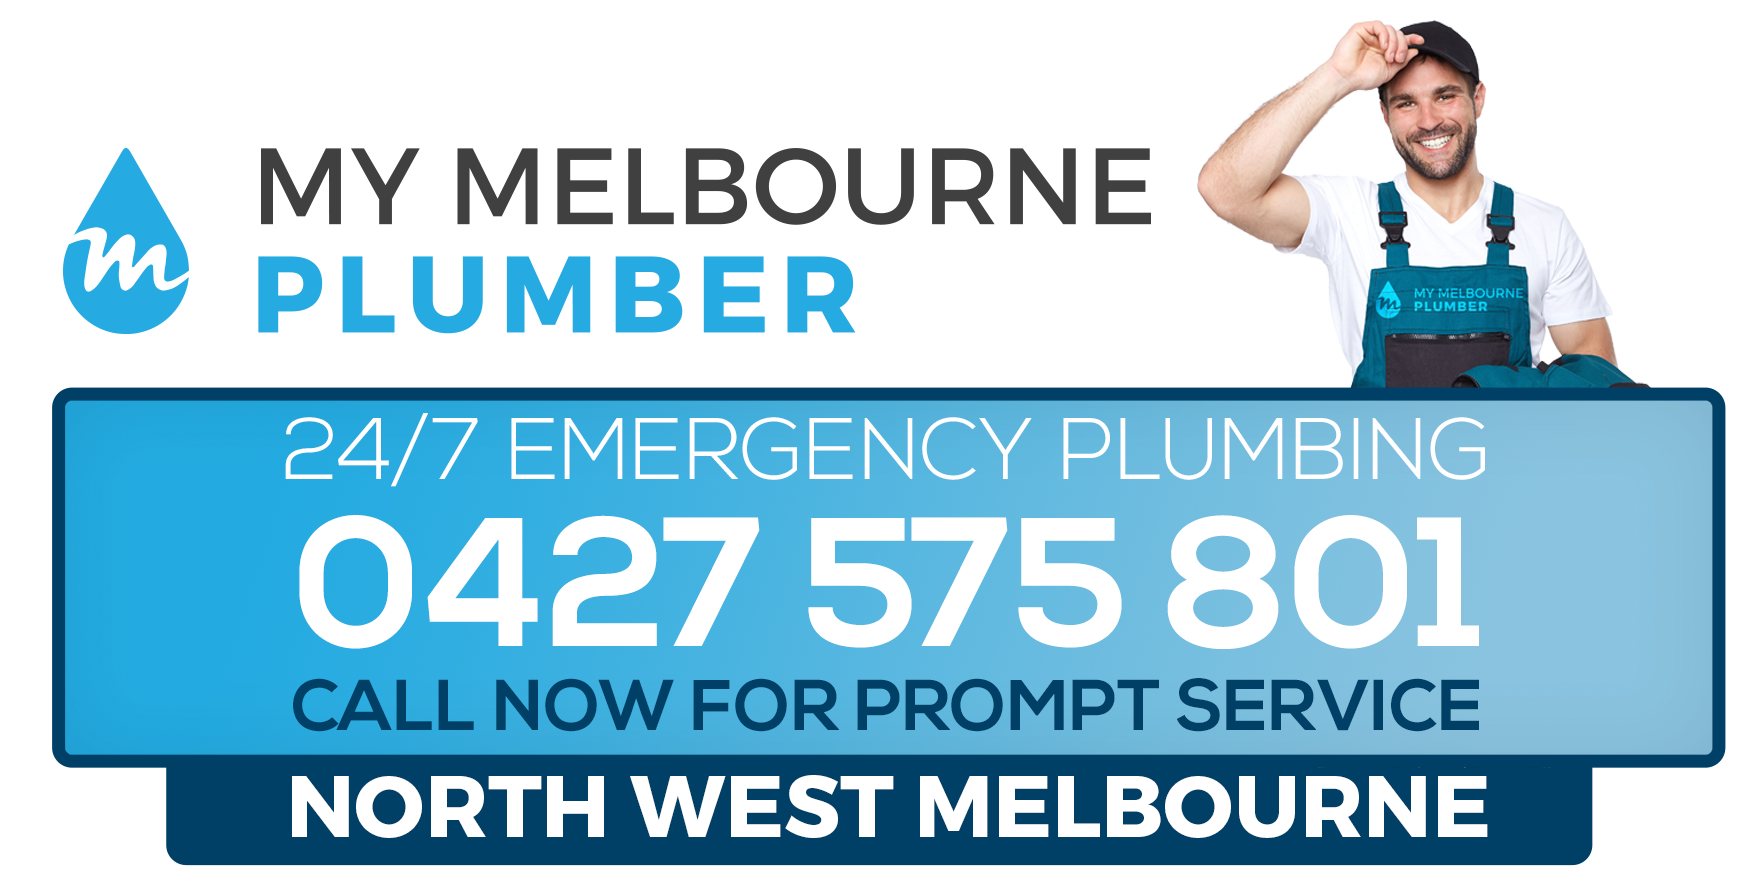 Plumbers North West Melbourne